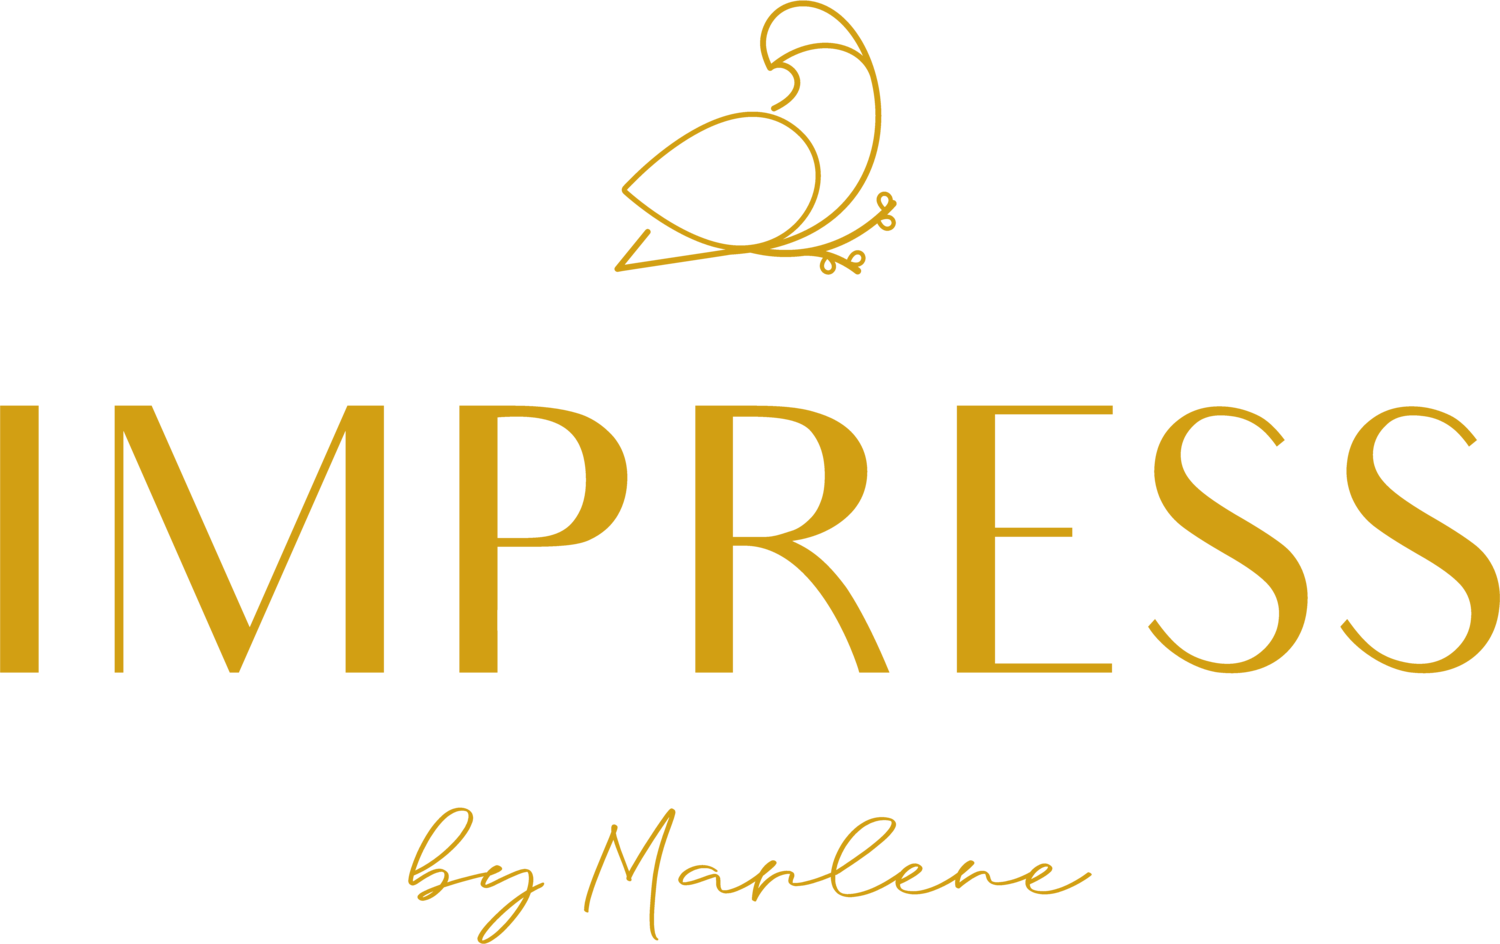 Impress By Marlene